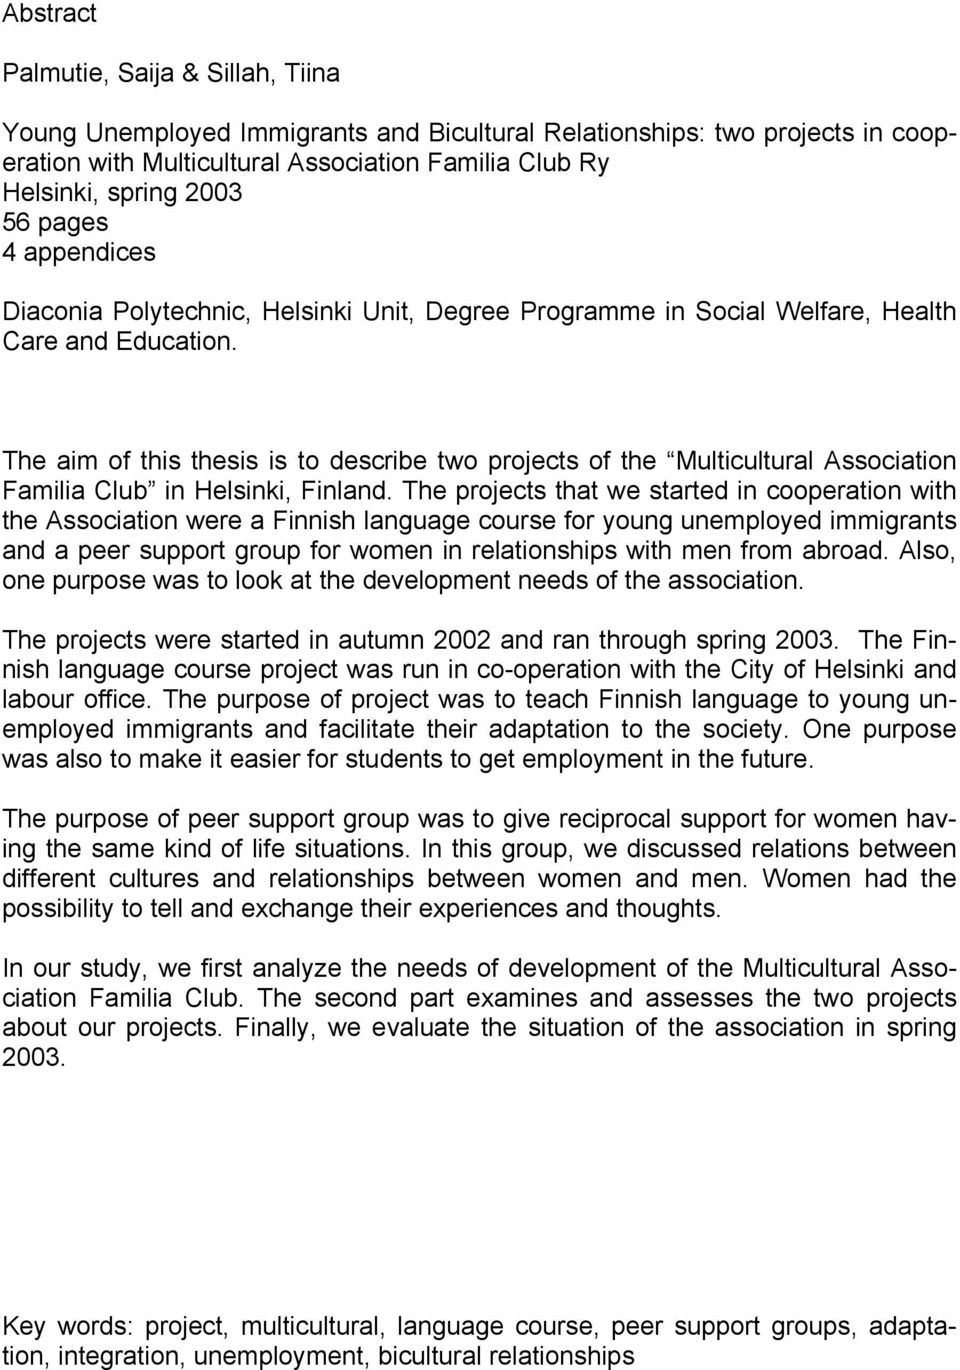 The aim of this thesis is to describe two projects of the Multicultural Association Familia Club in Helsinki, Finland.